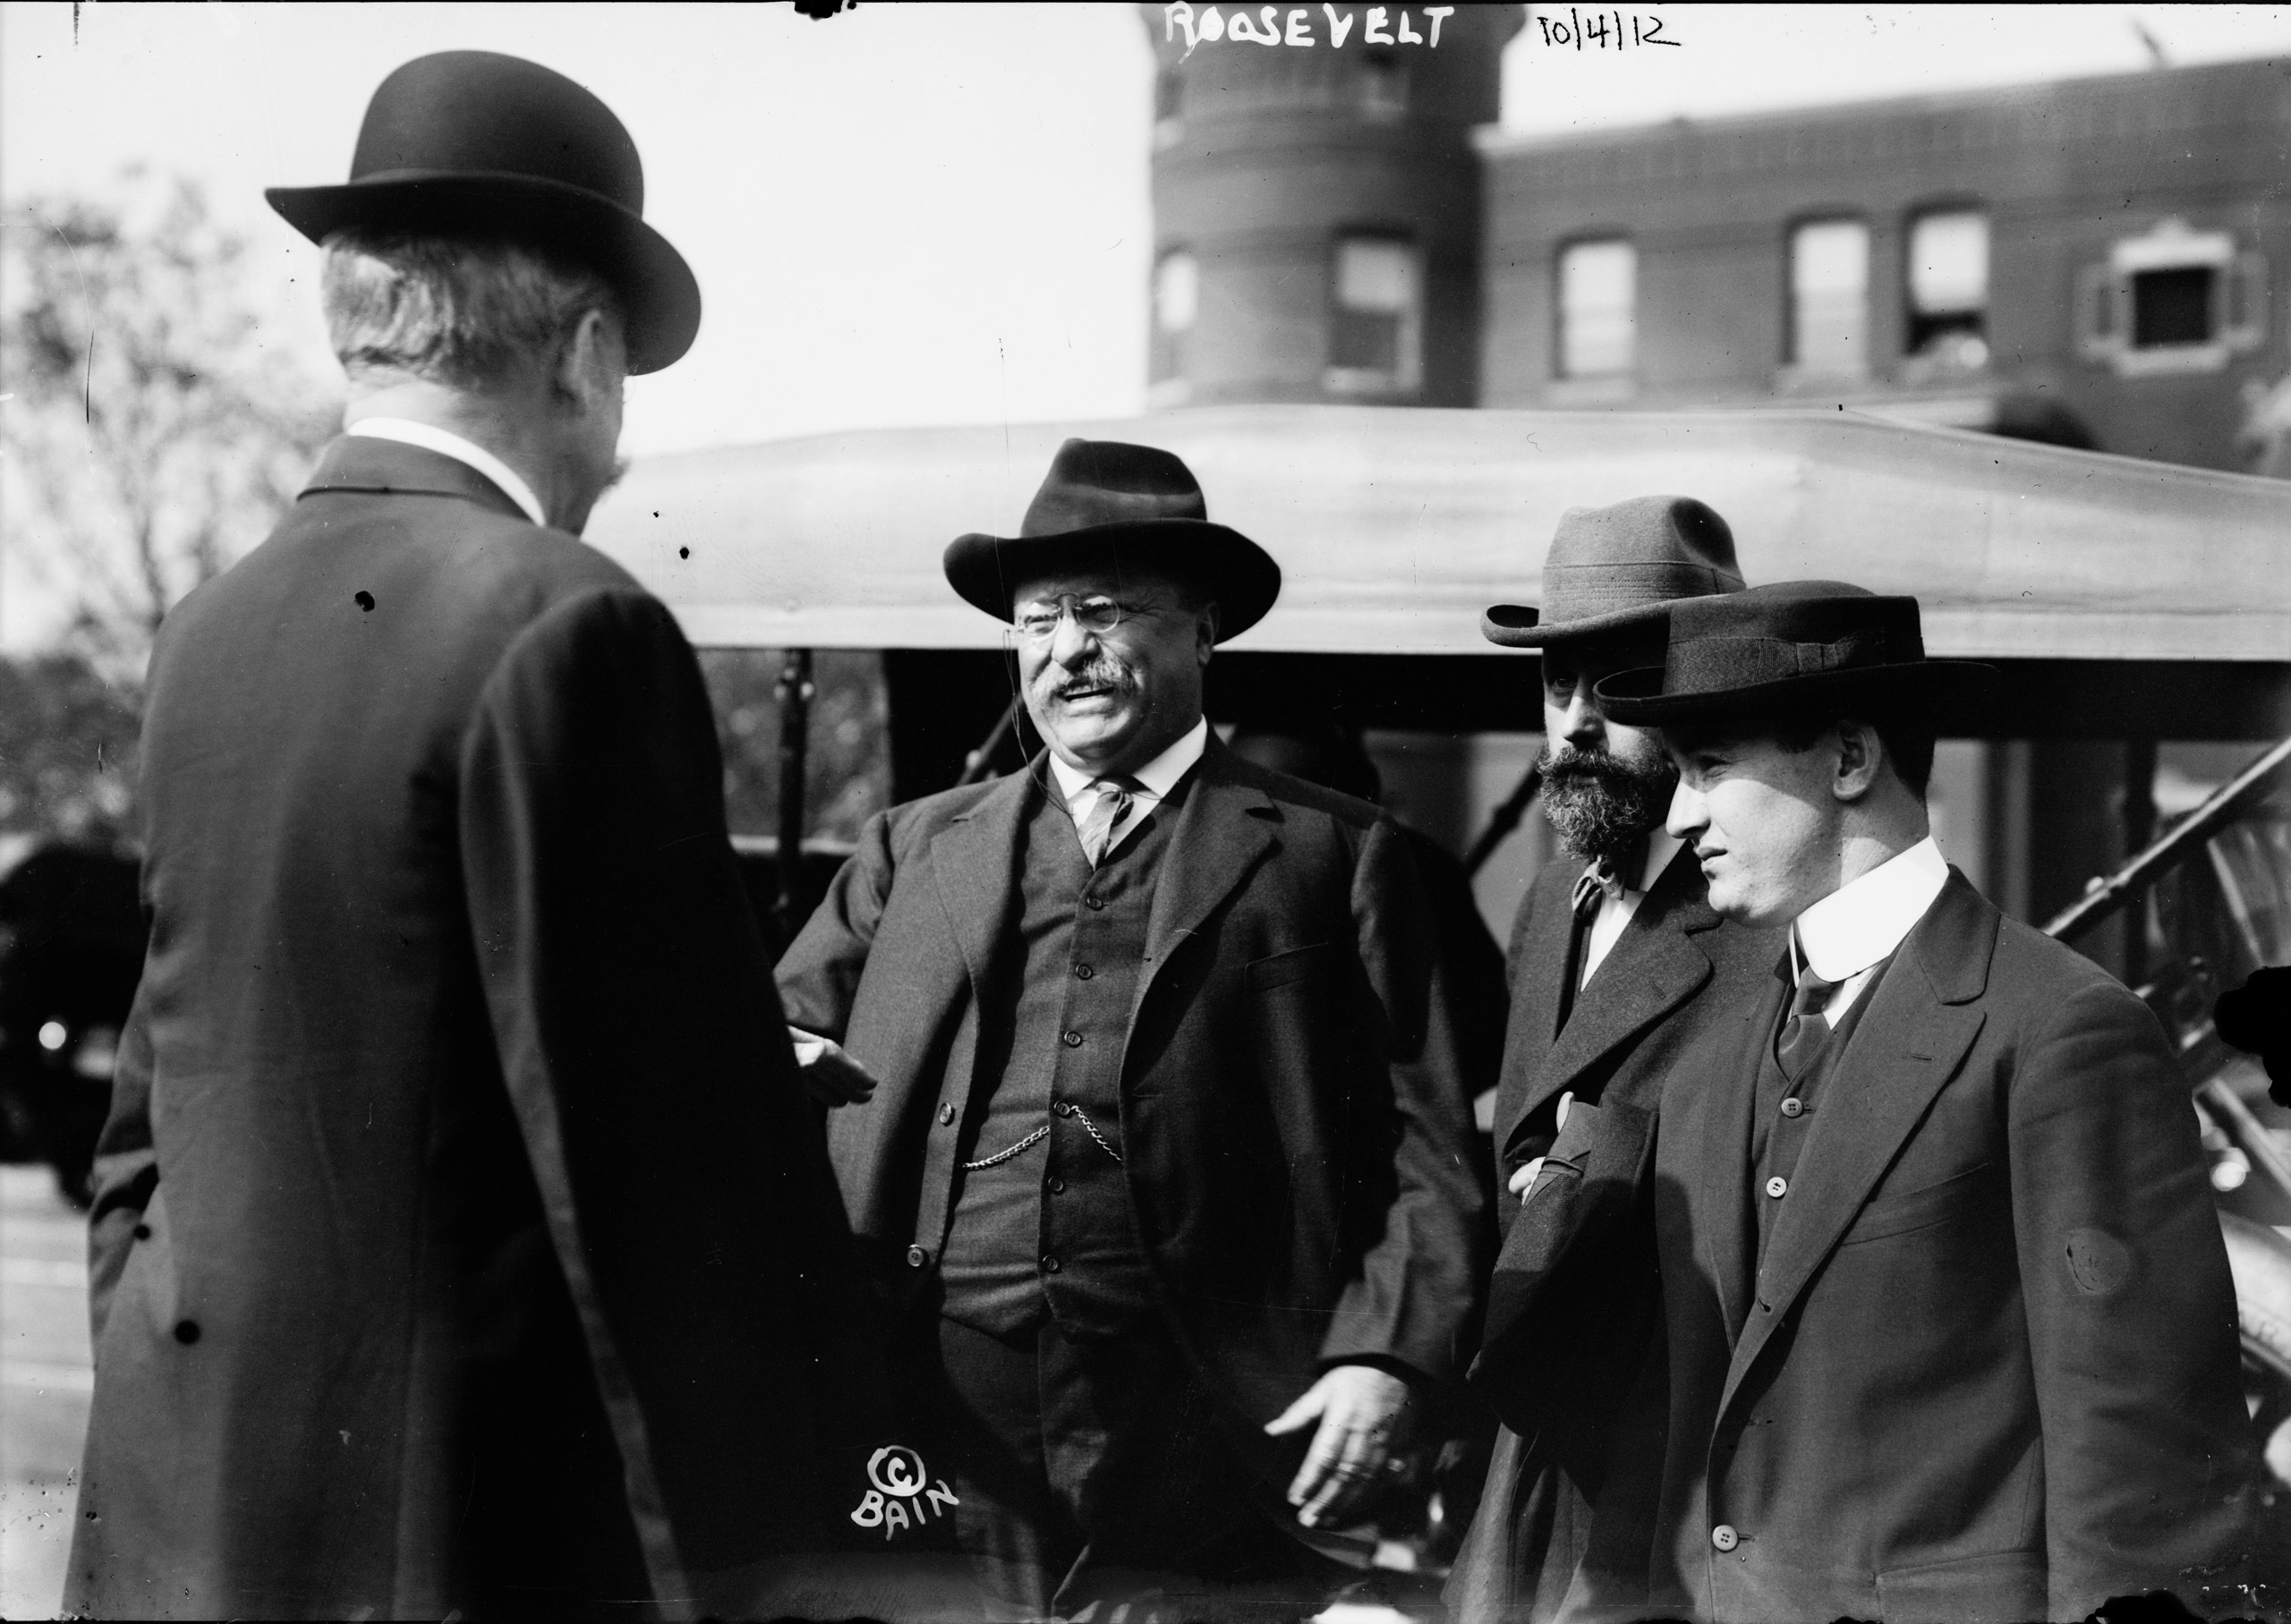 Theodore Roosevelt Shortly Before Assassination Attempt